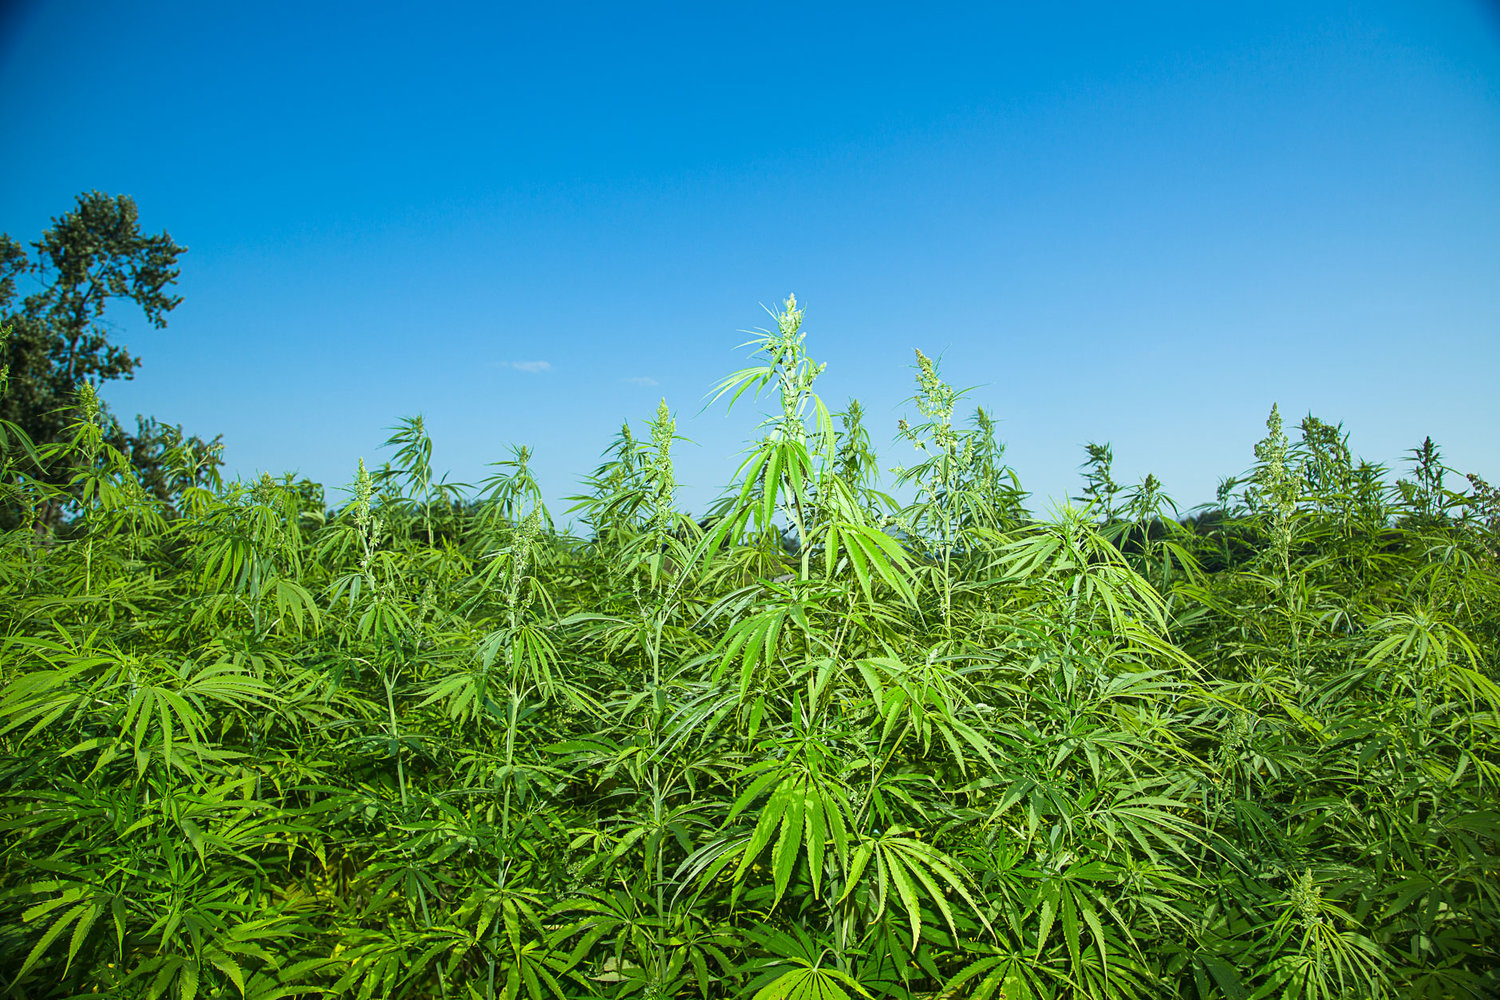 Industrial hemp research in Kentucky. Image by UK College of Agriculture, Food and Environment